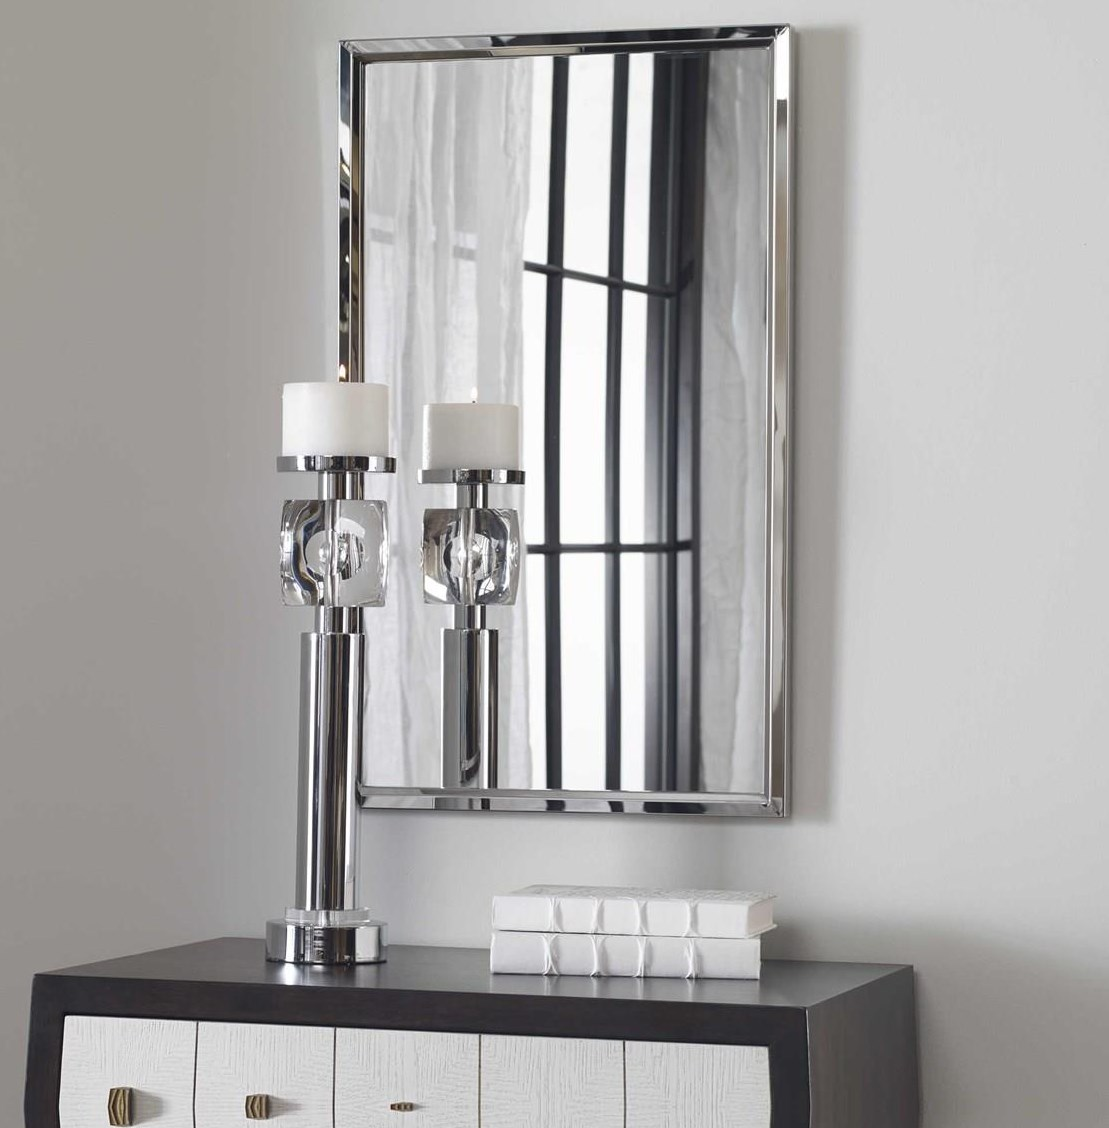 Mirrors QUINN WALL MIRROR by Unique at Walker's Furniture